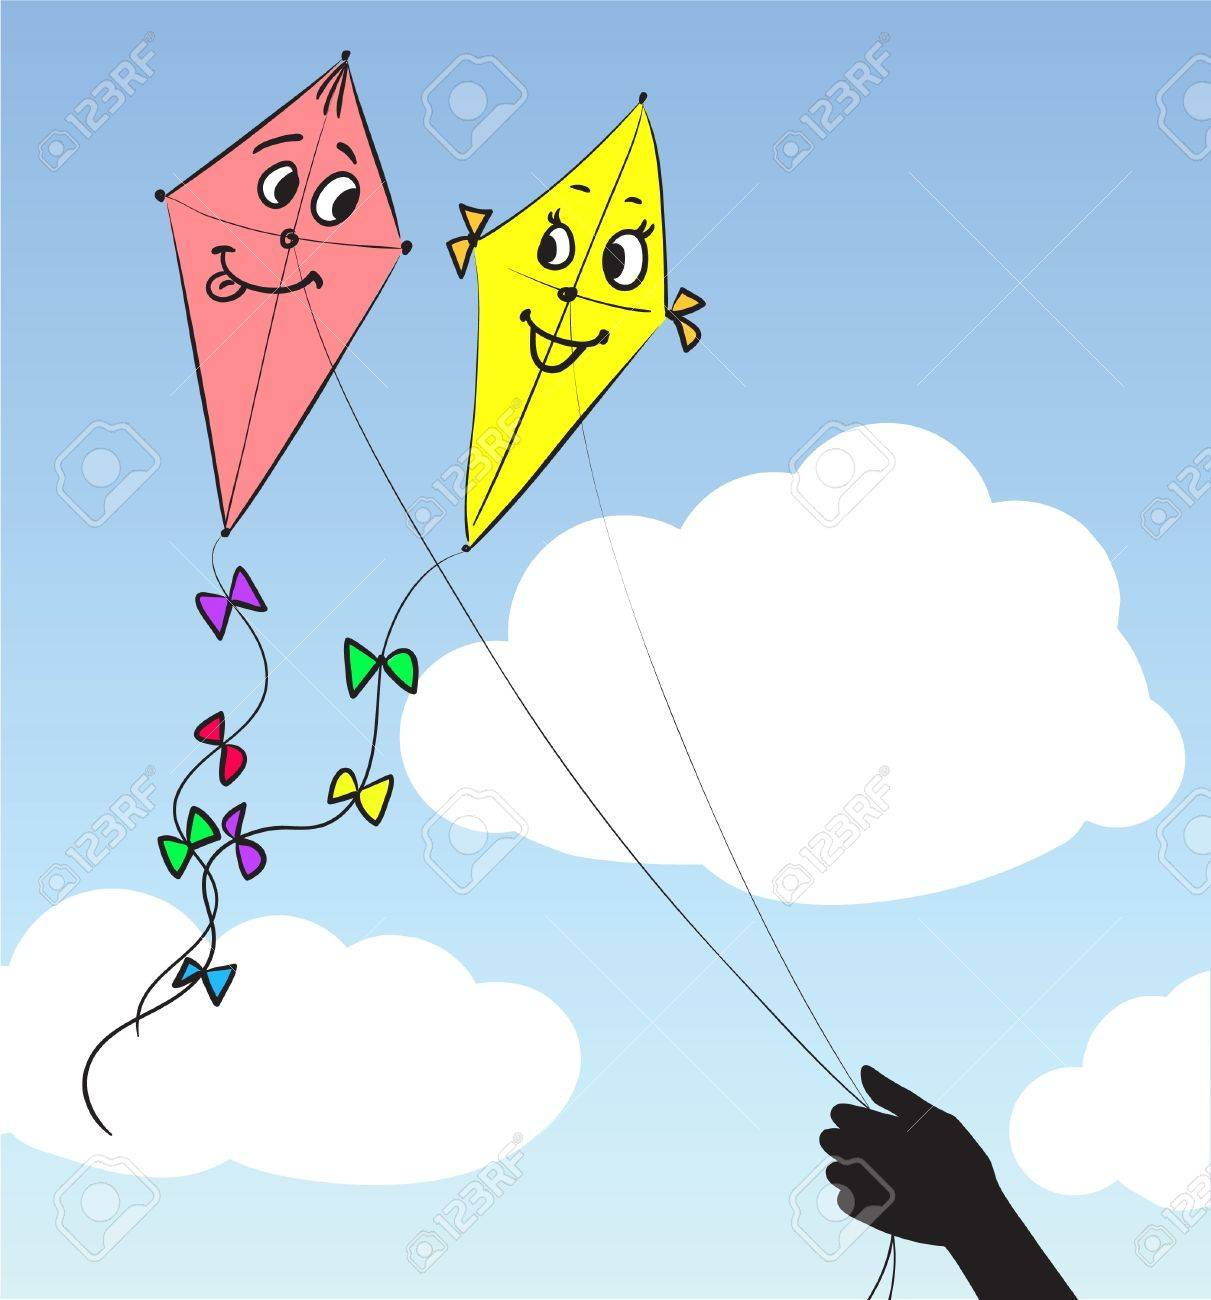 Image result for two kites